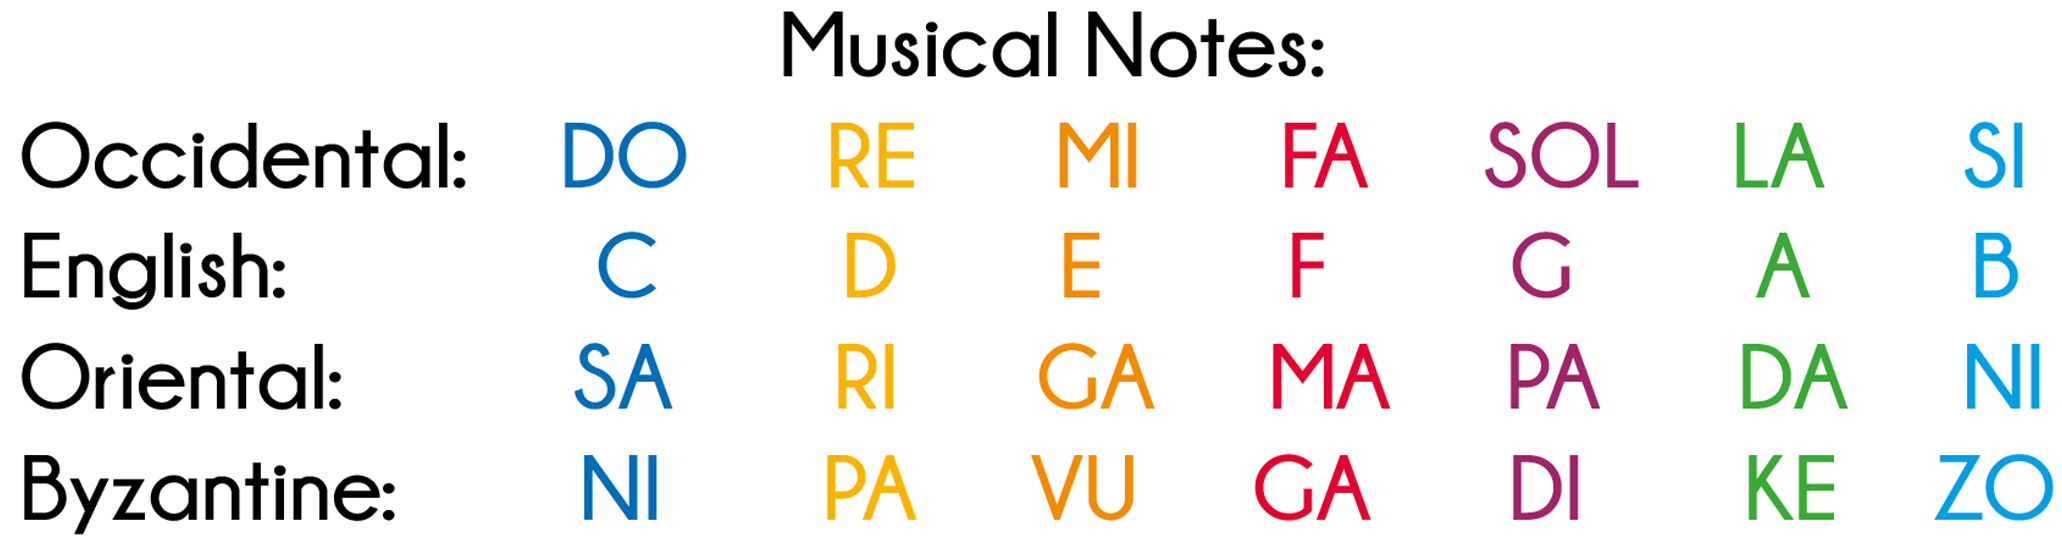 Musical Notes Name